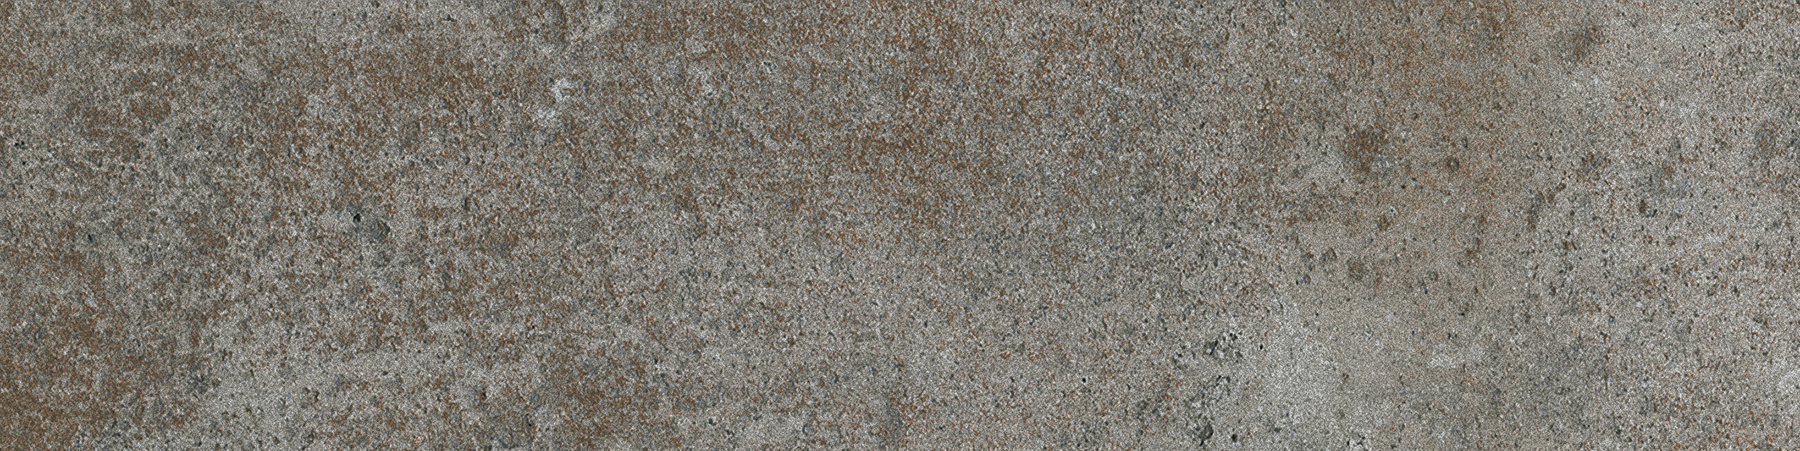 BULLNOSE FRENCH QUARTER BIENVILLE 3X12